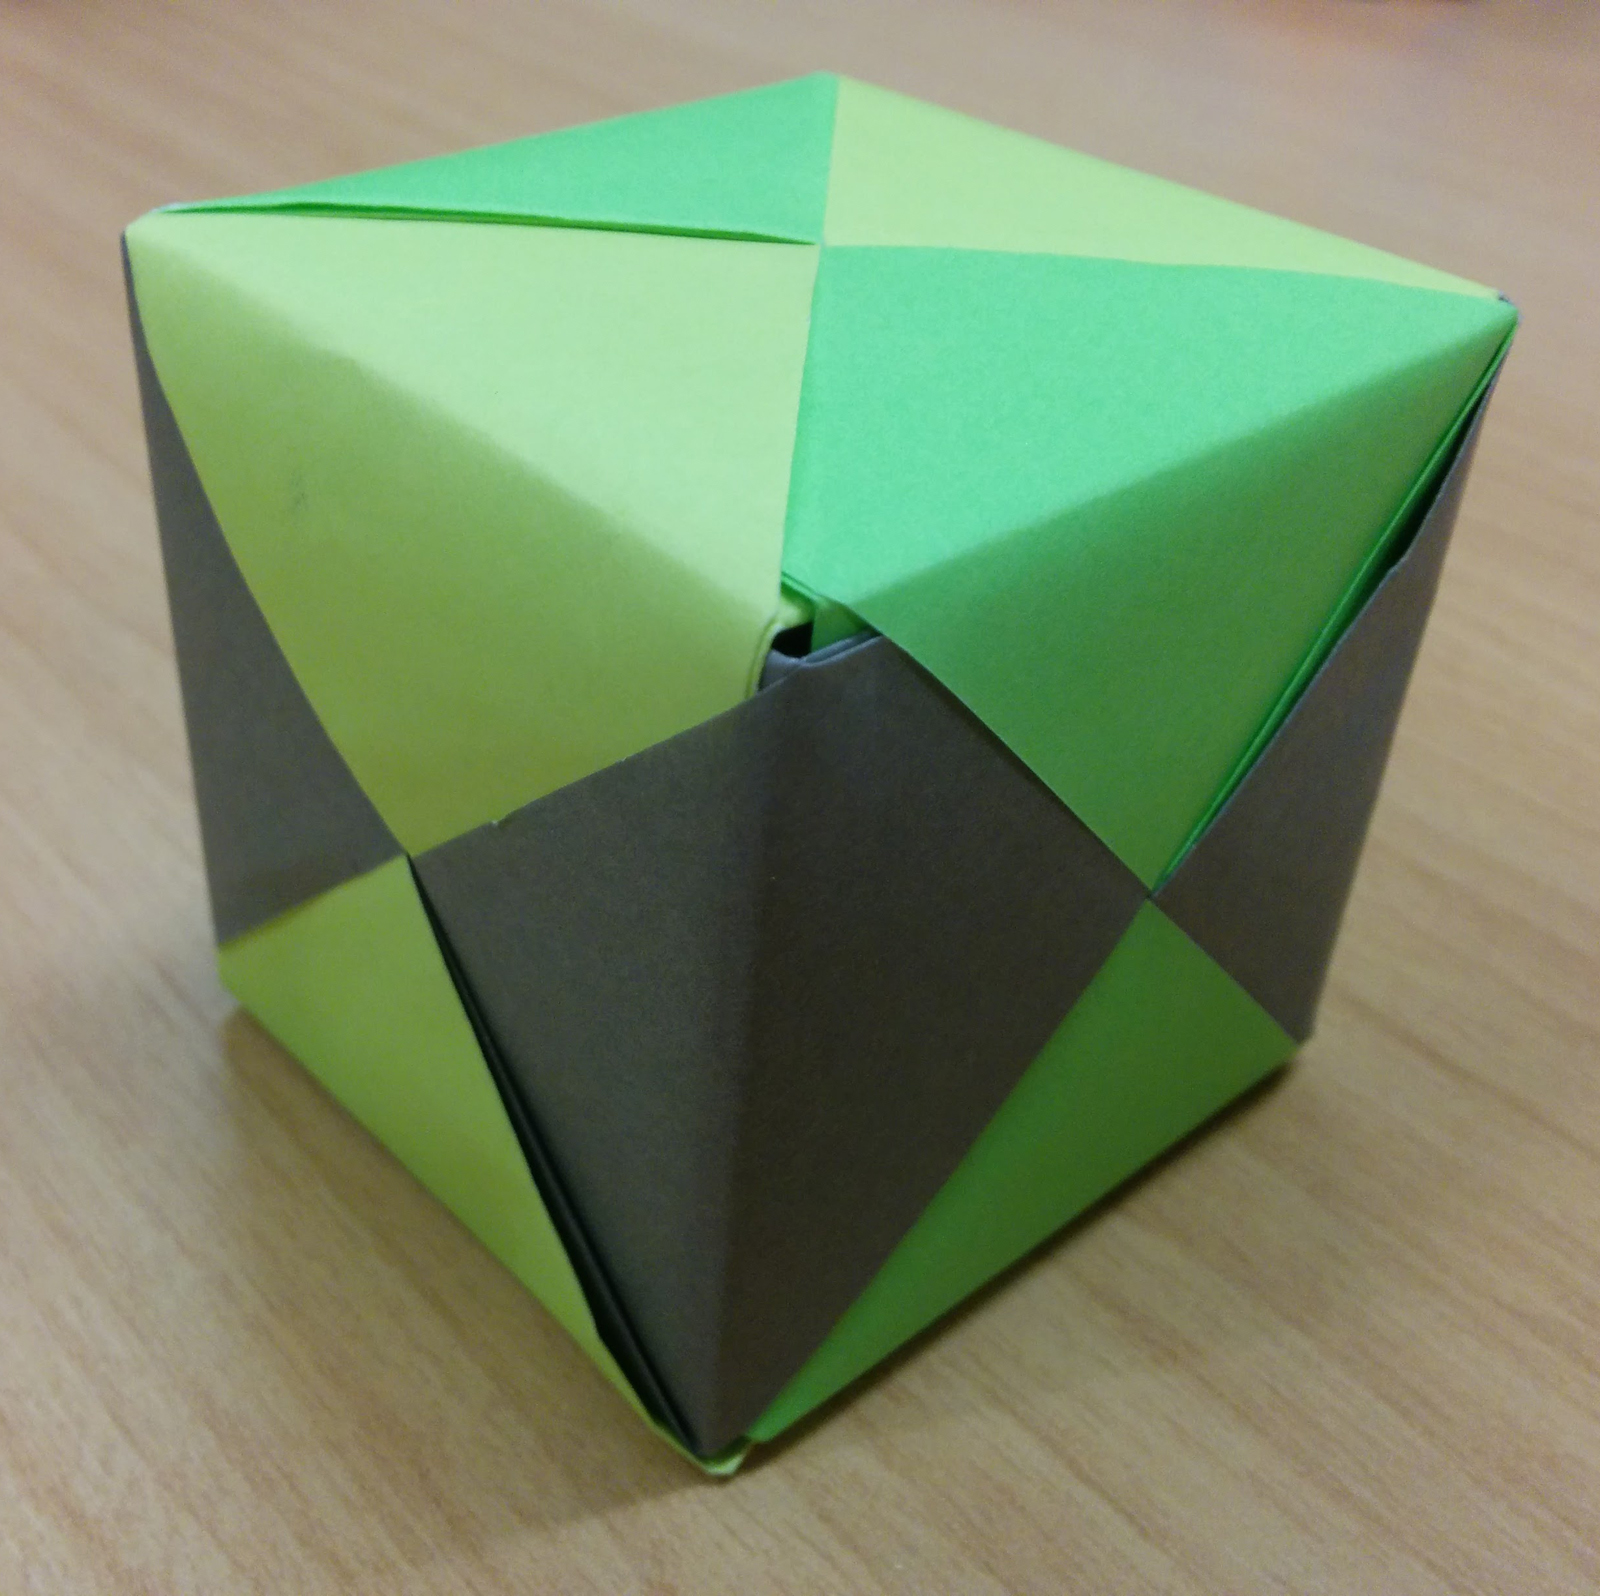 Modular Origami: How to Make a Cube, Octahedron & Icosahedron from ... | 998x1000